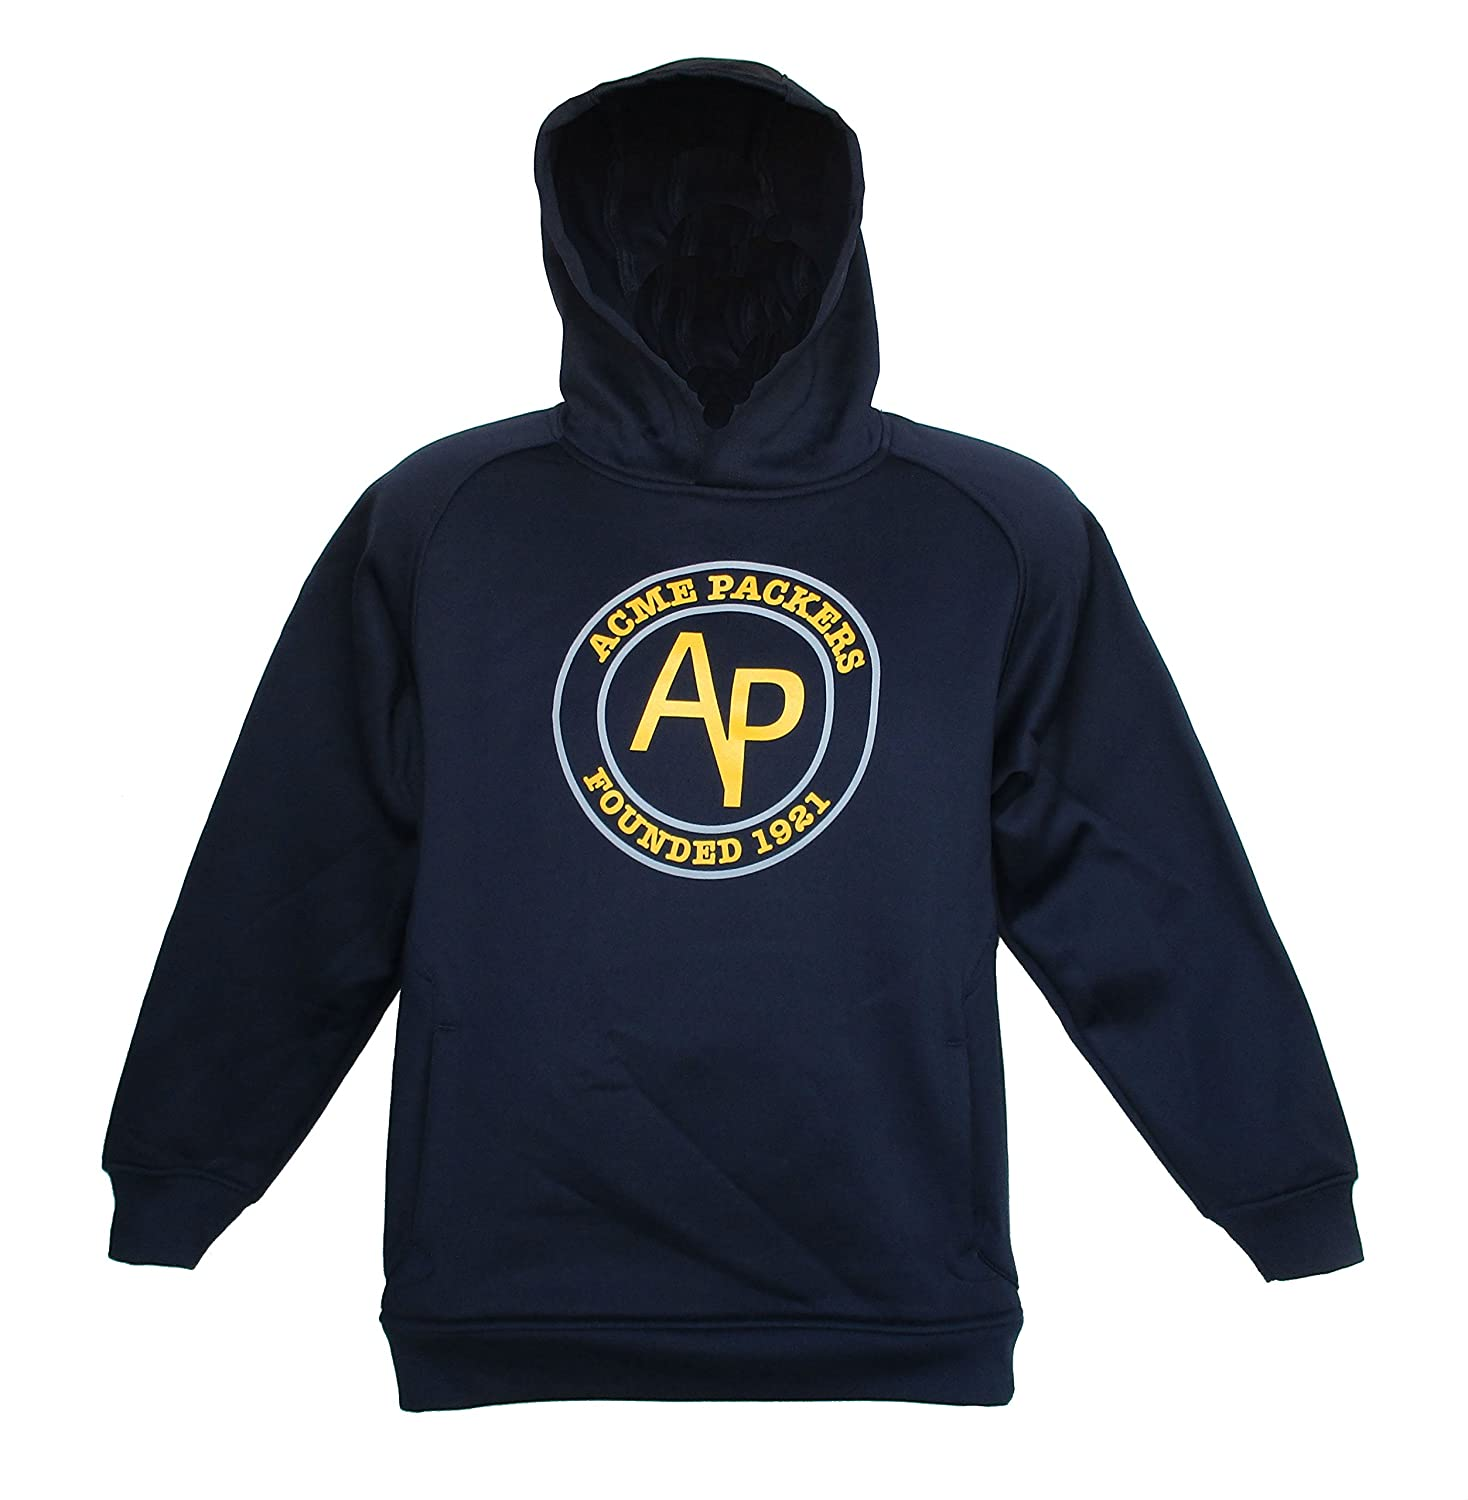 Amazon.com   ACME Packers   Green Bay Packers Throwback Hooded Sweatshirt  YOUTH Small (8) - Navy Blue   Gold   Sports   Outdoors 89bfa02e7